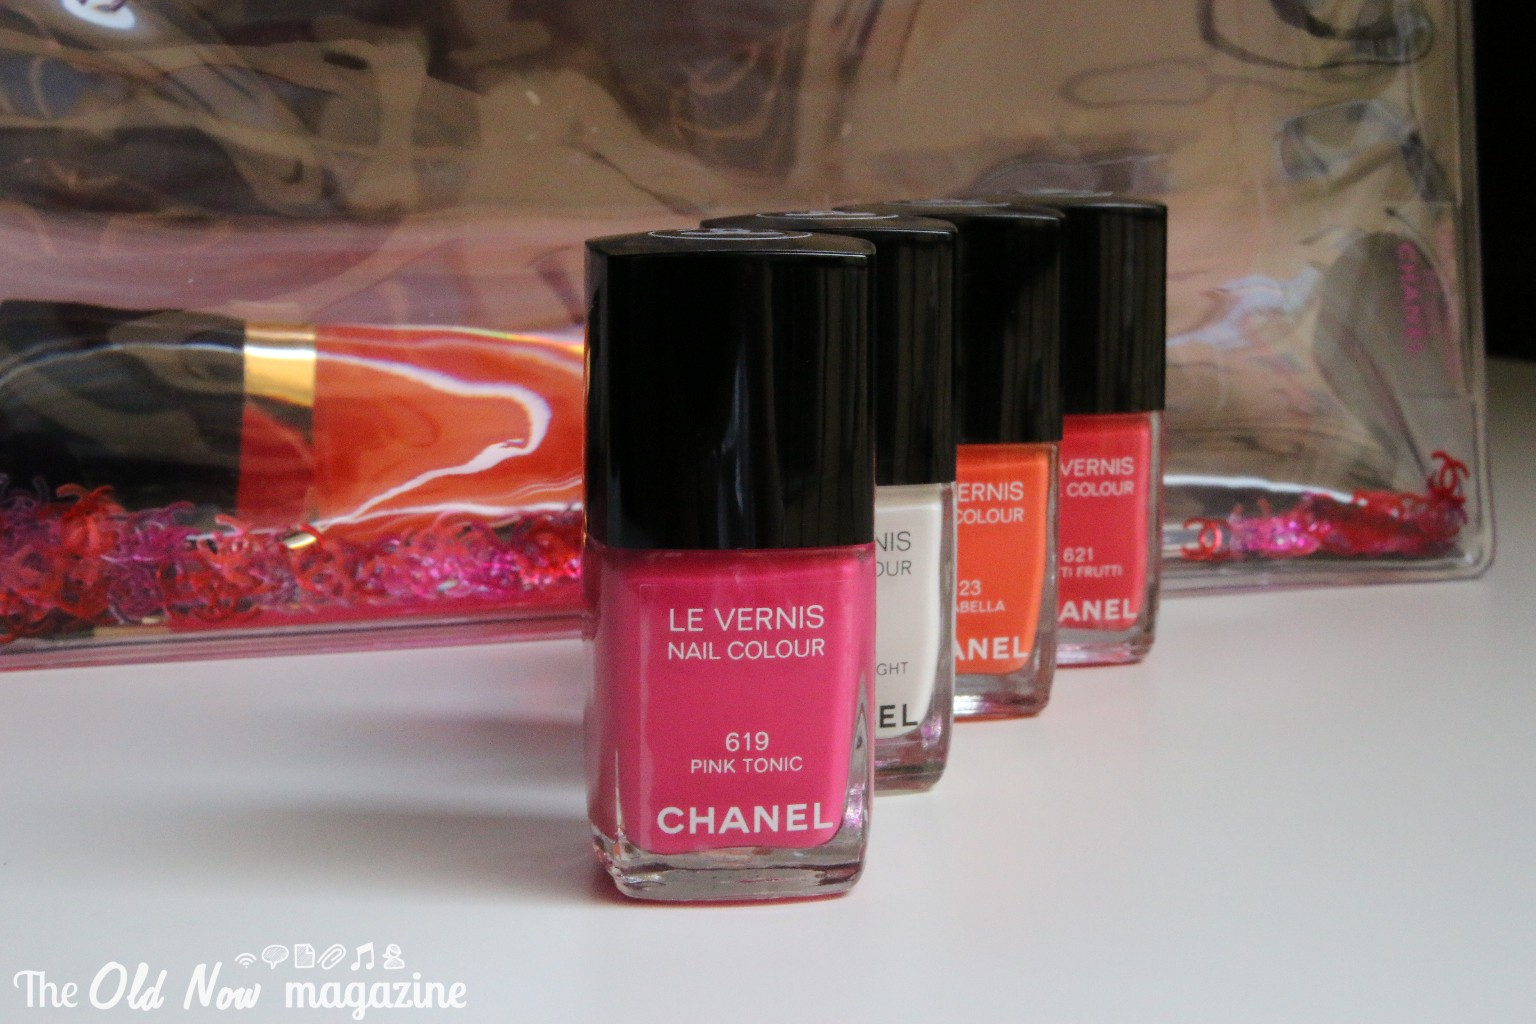 Chanel Collection Reflets d'Ete THEOLDNOW (18)